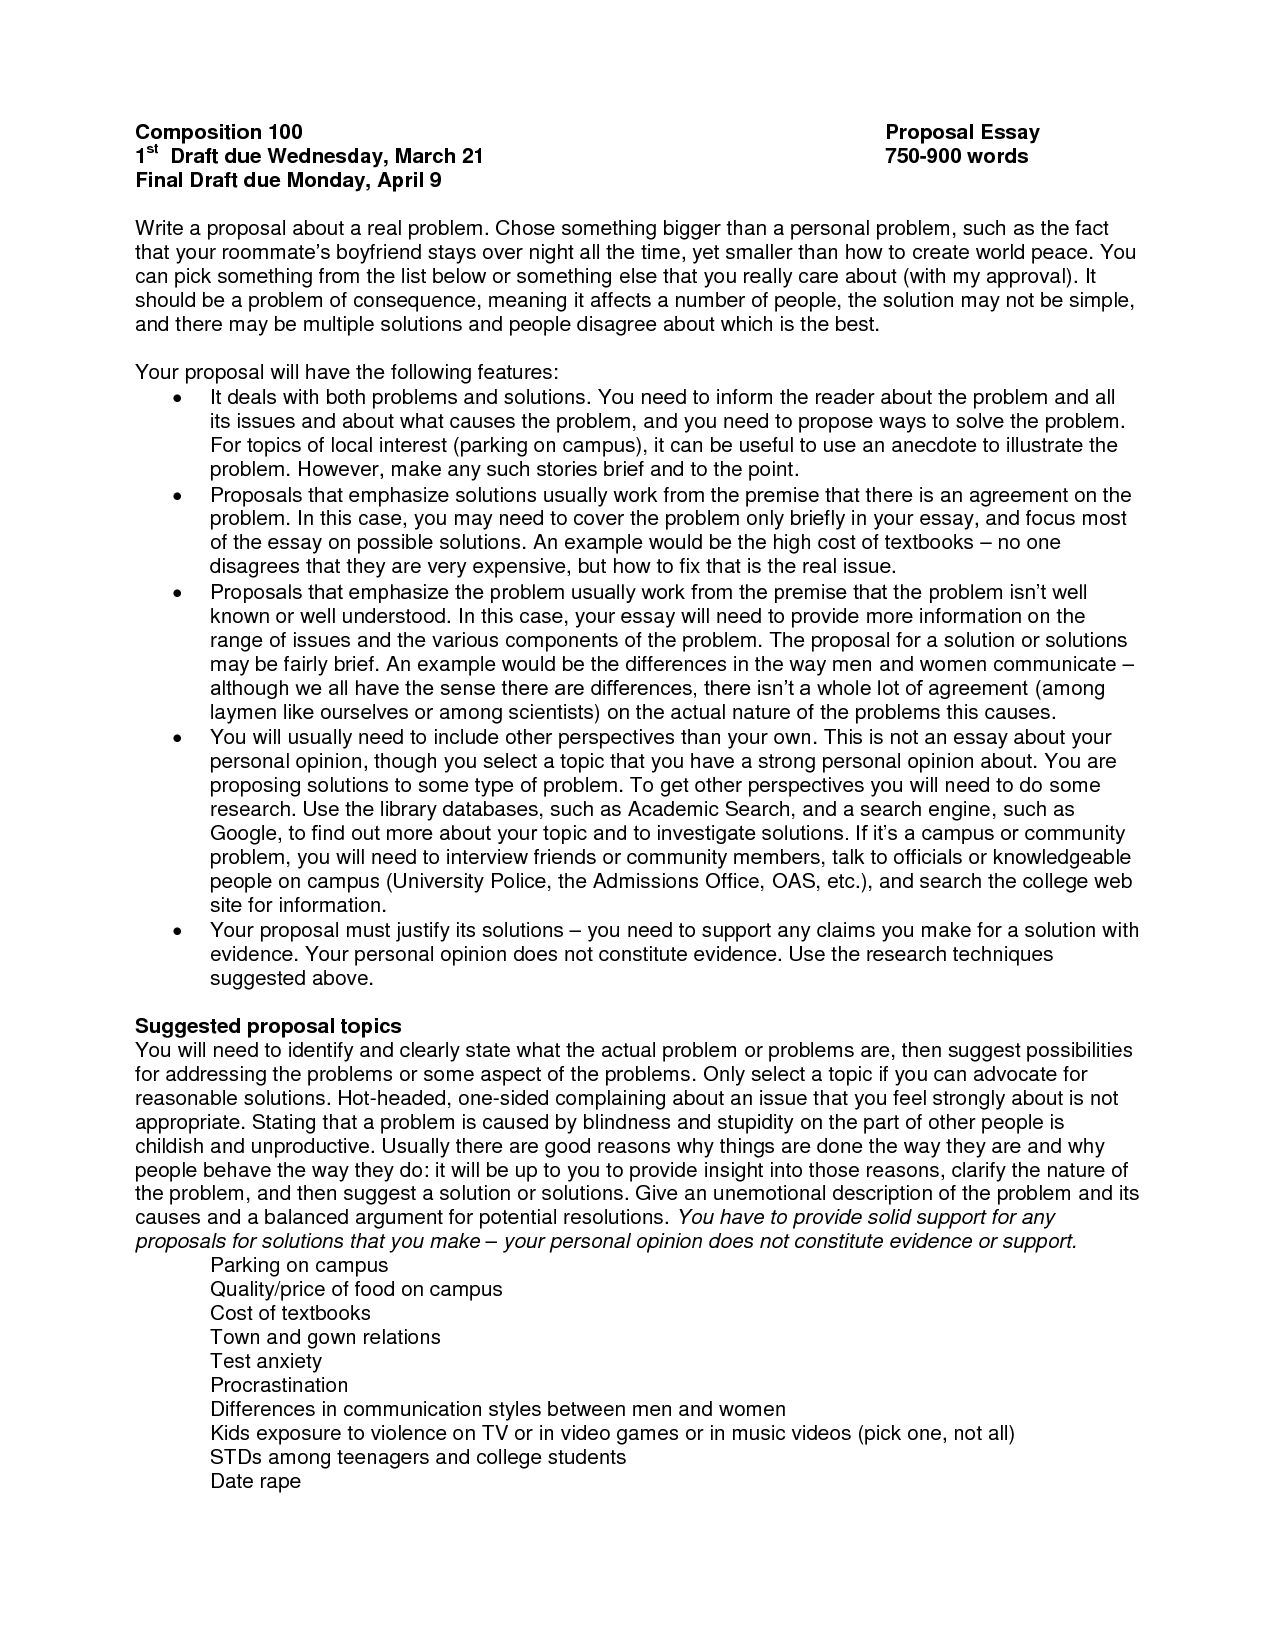 proposal essay example